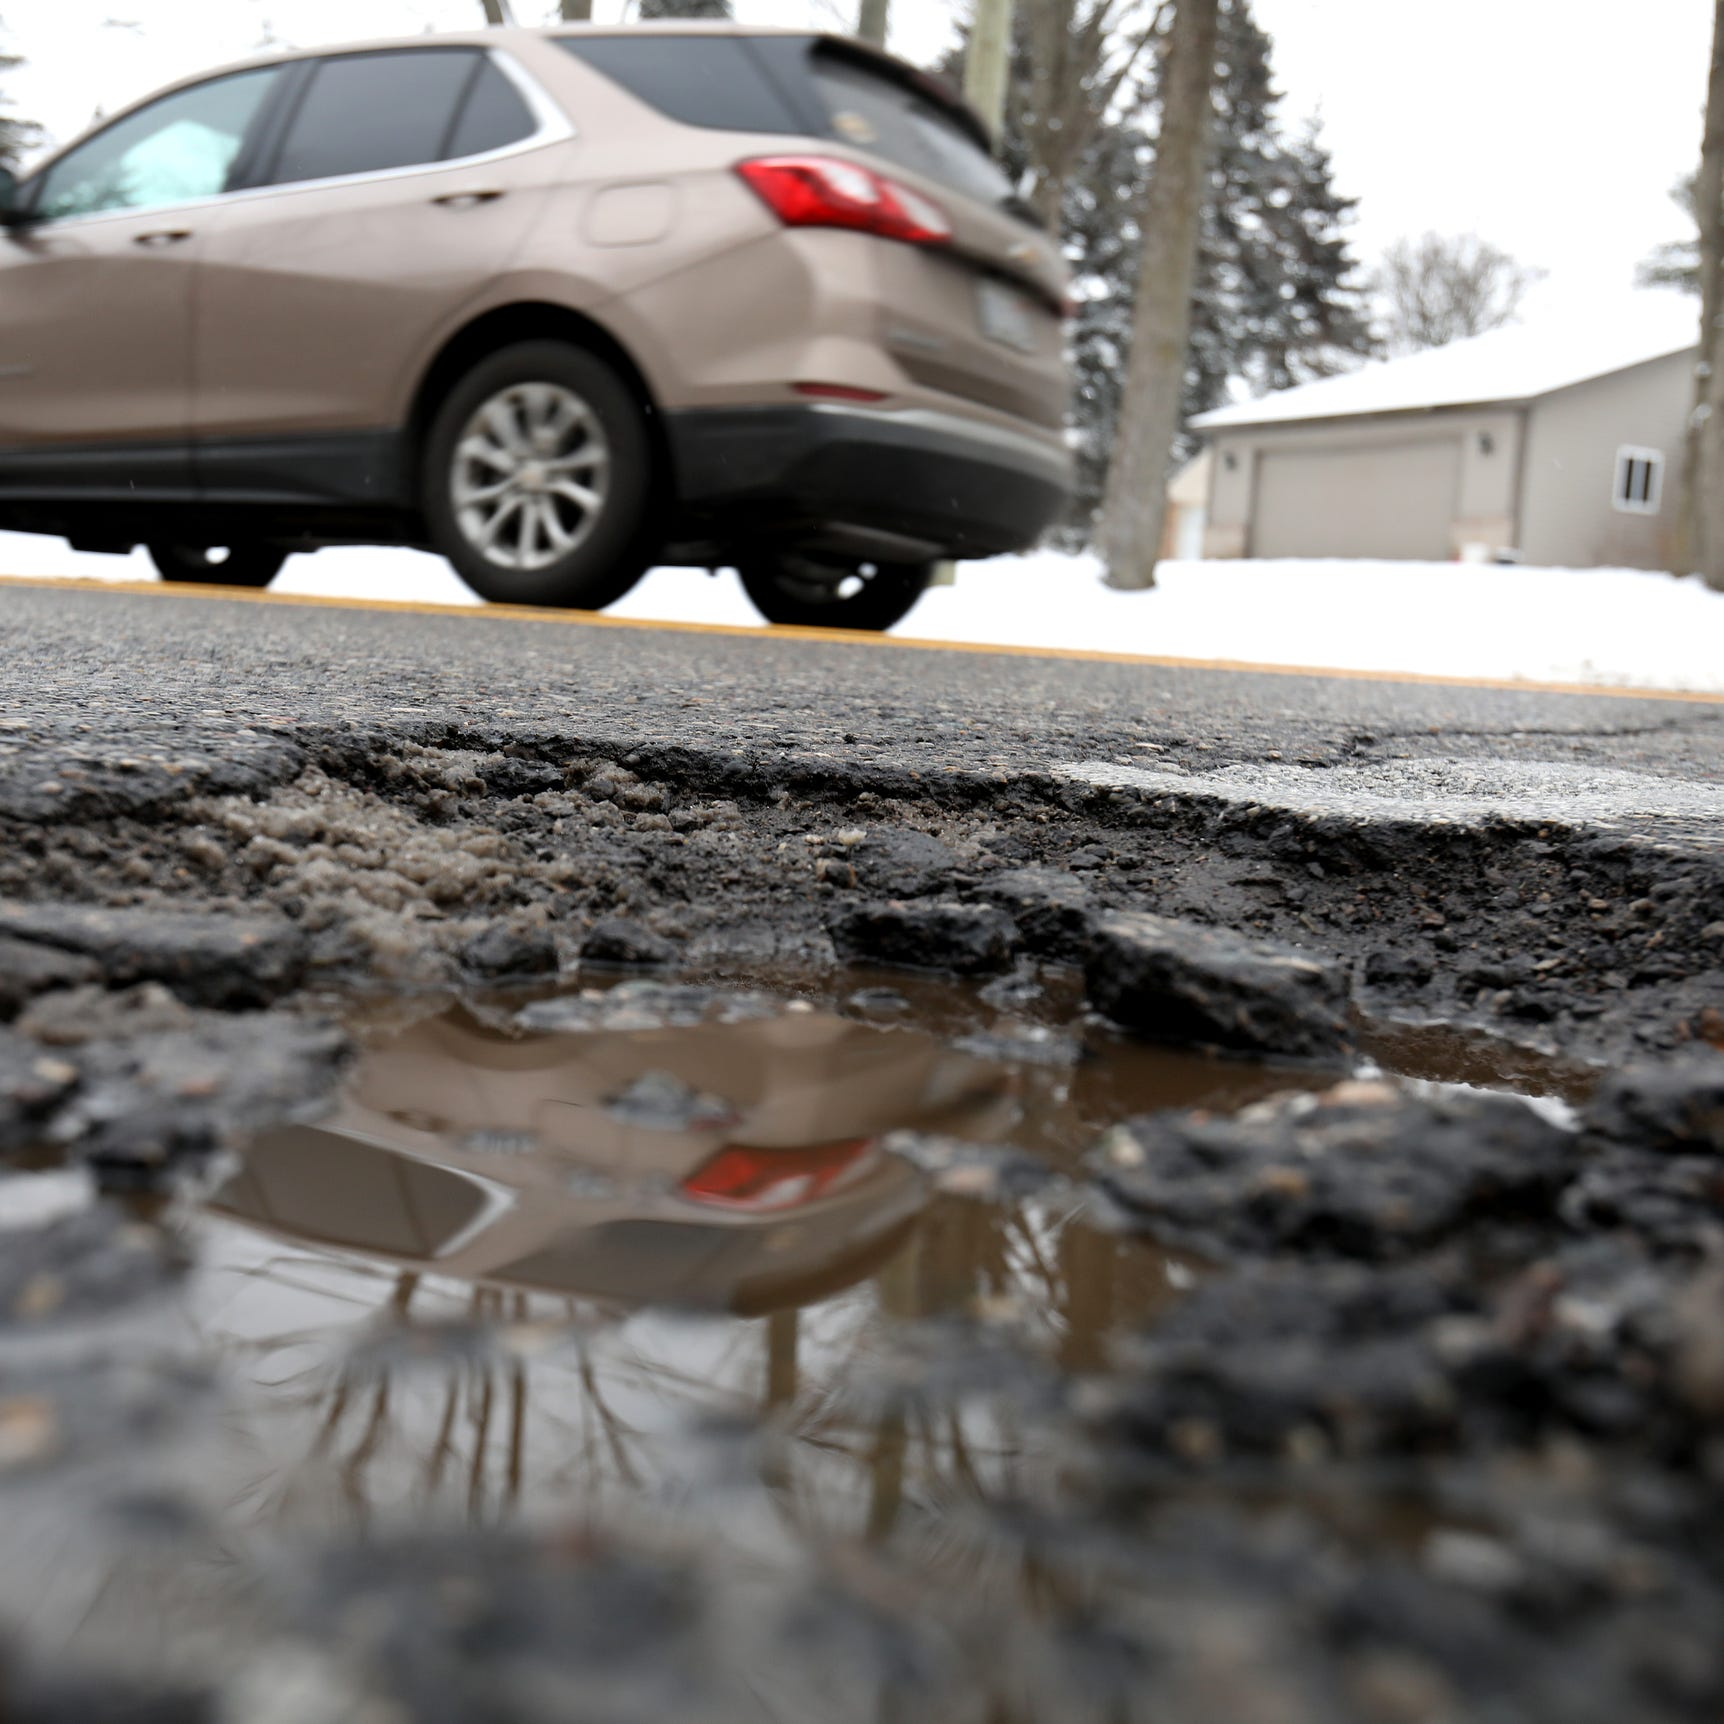 Slingshot effect? What happens when a car hits a pothole